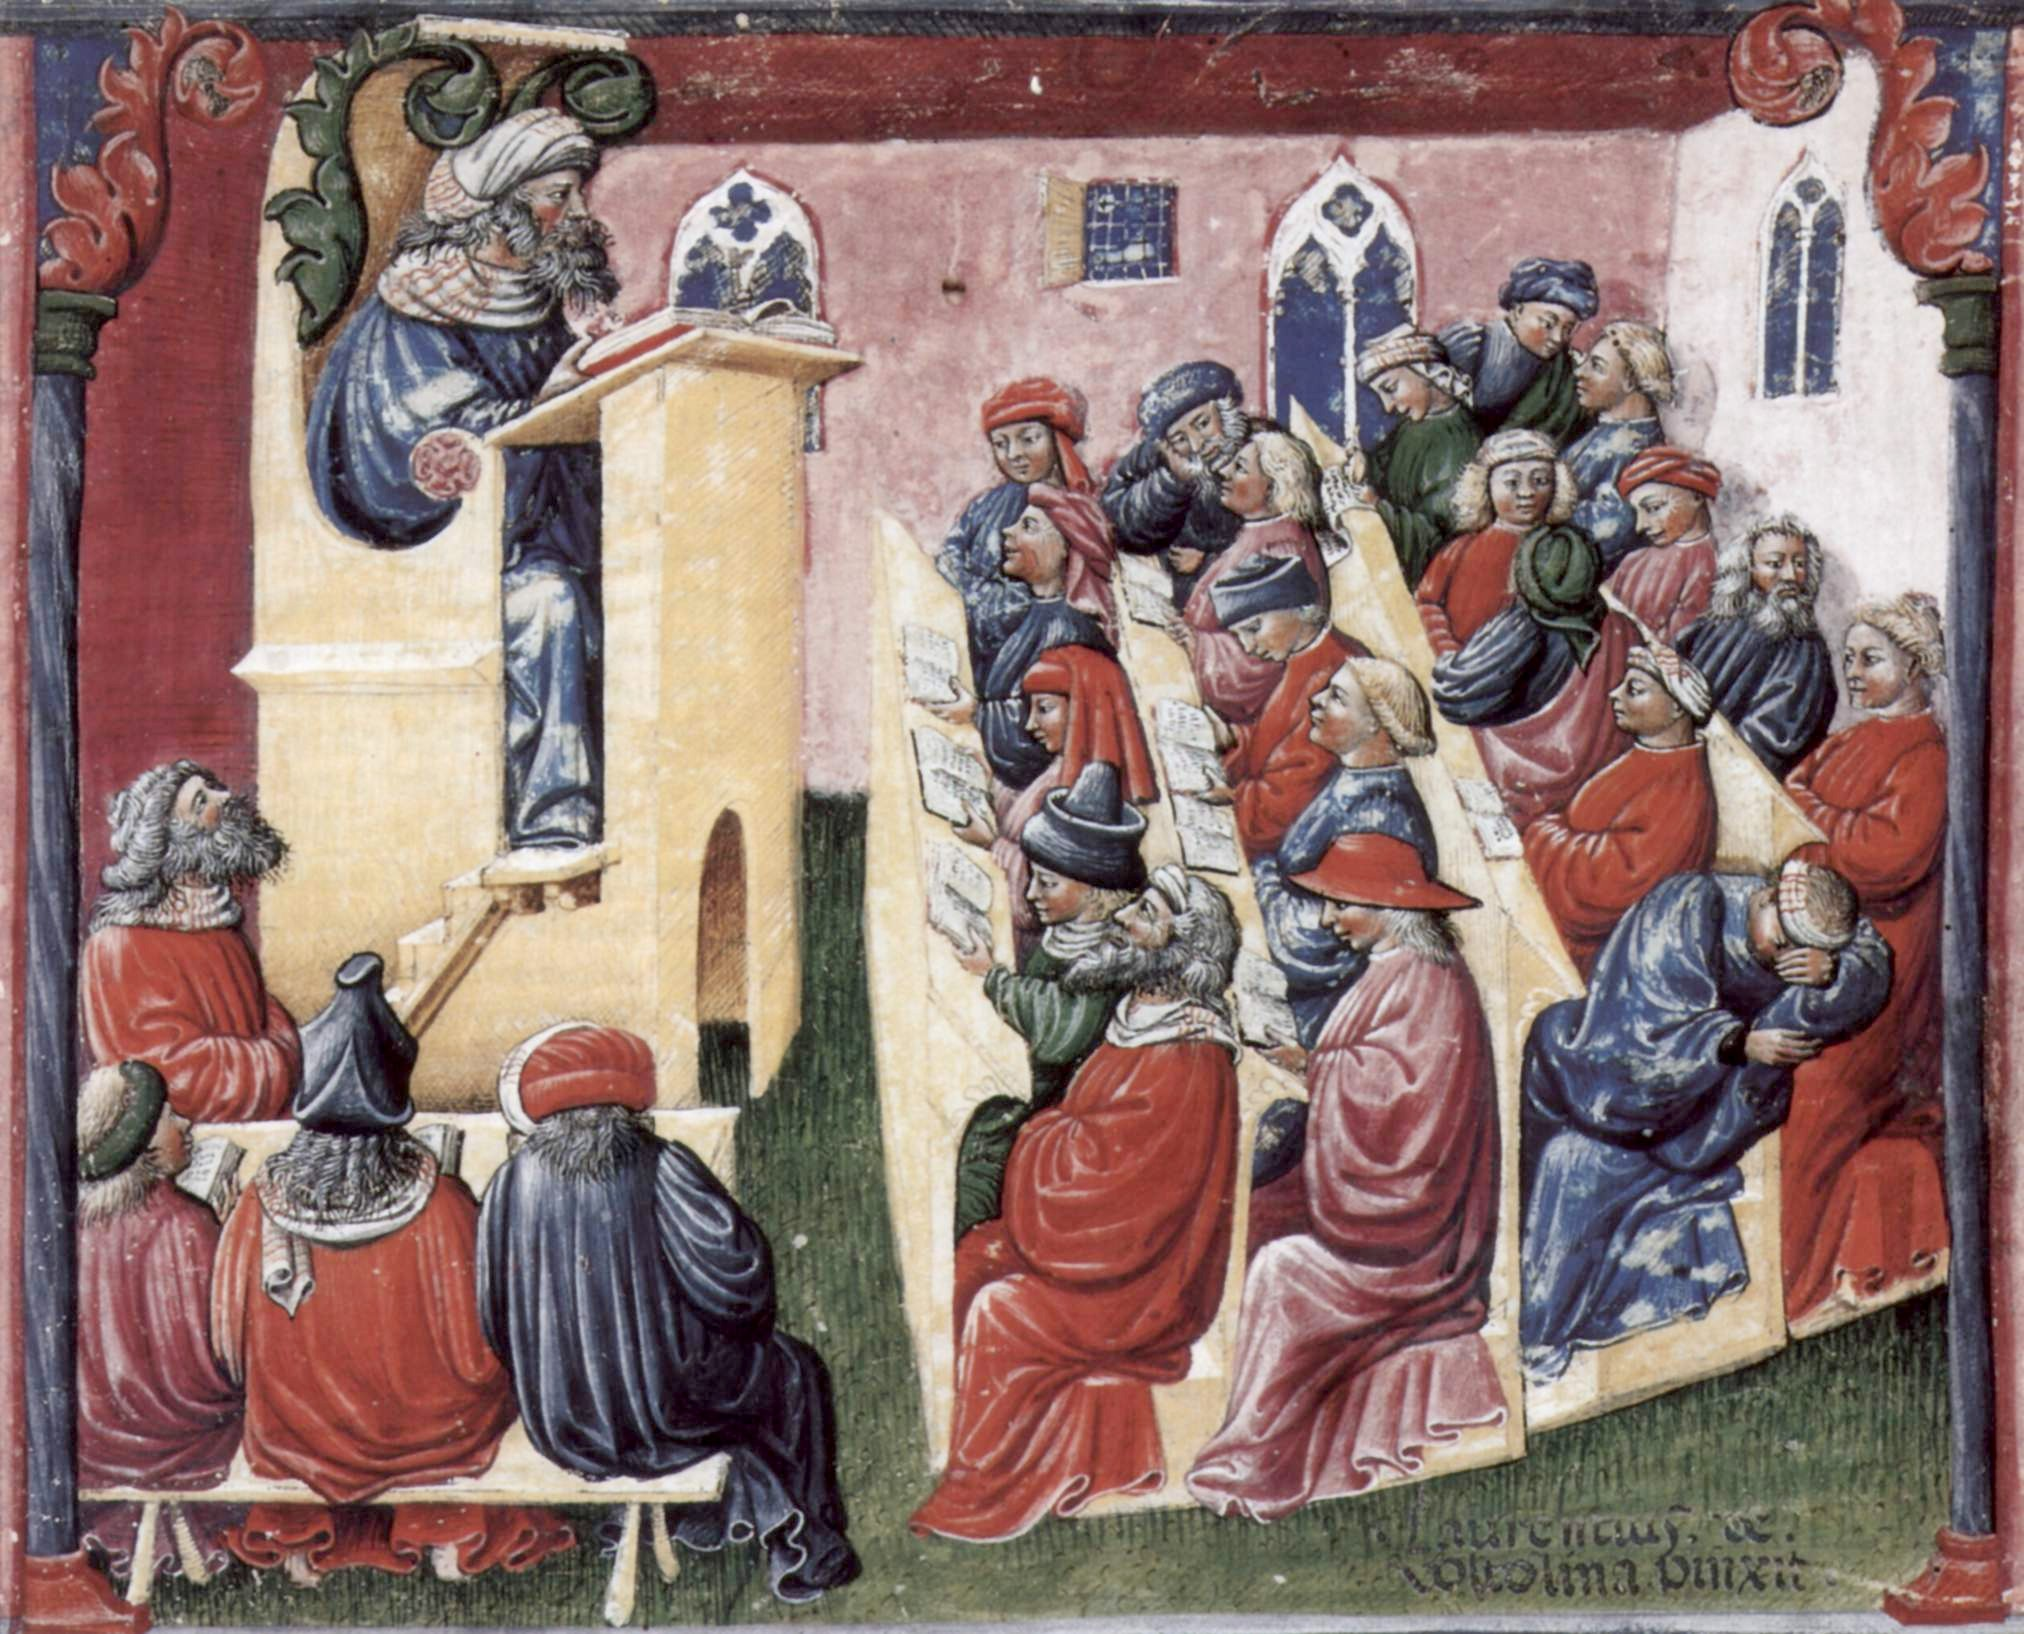 Class at the University around 1350.